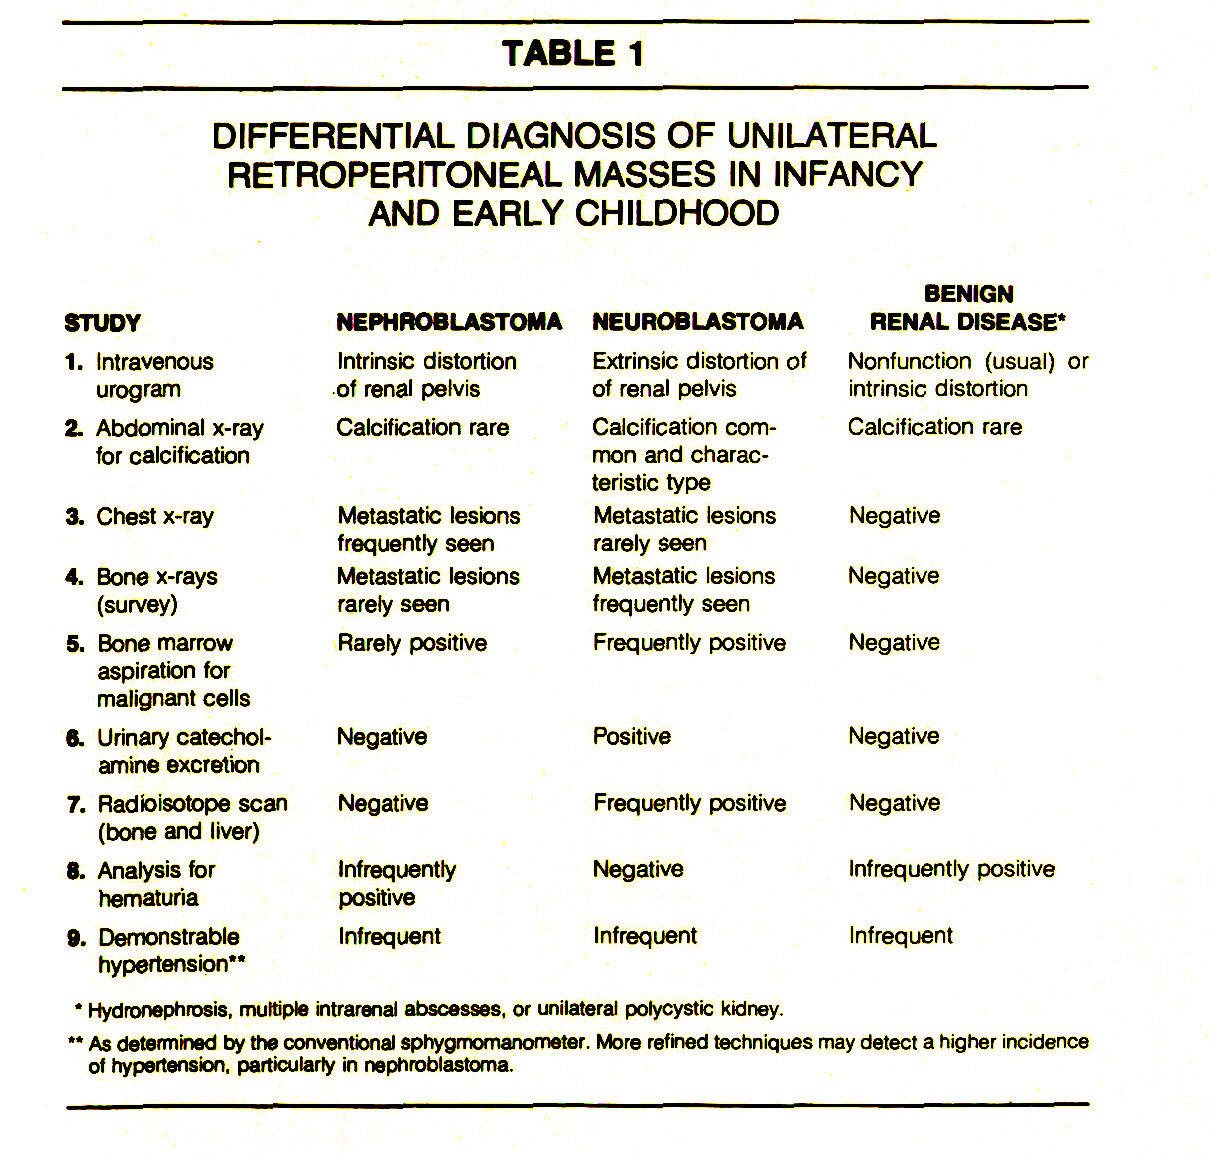 TABLE 1DIFFERENTIAL DIAGNOSIS OF UNILATERAL RETROPERITONEAL MASSES IN INFANCY AND EARLY CHILDHOOD